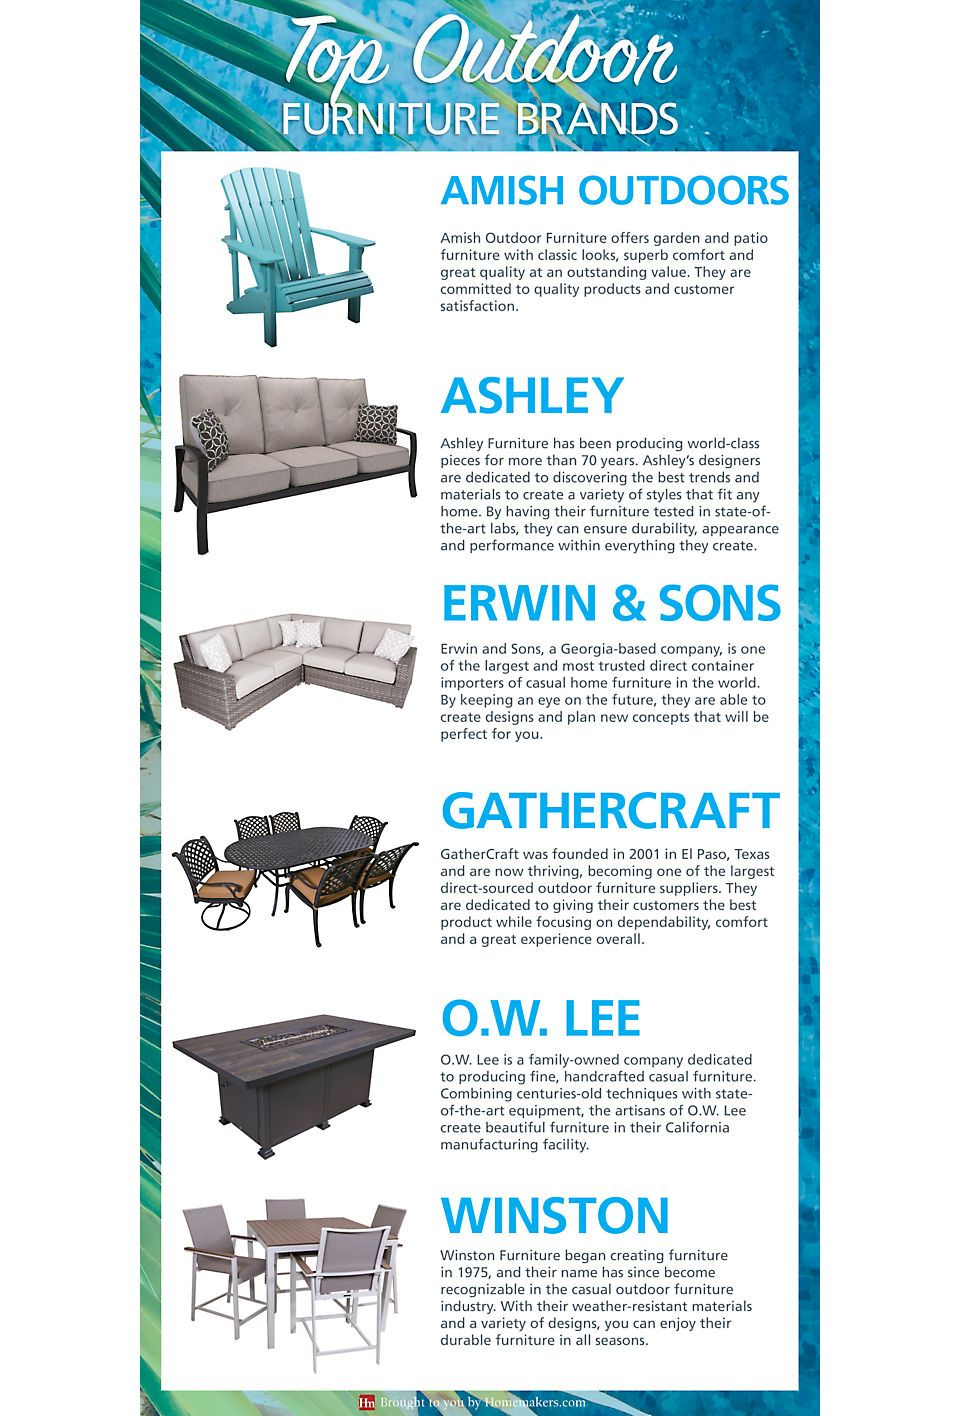 Explore the best outdoor furniture brands with this infographic